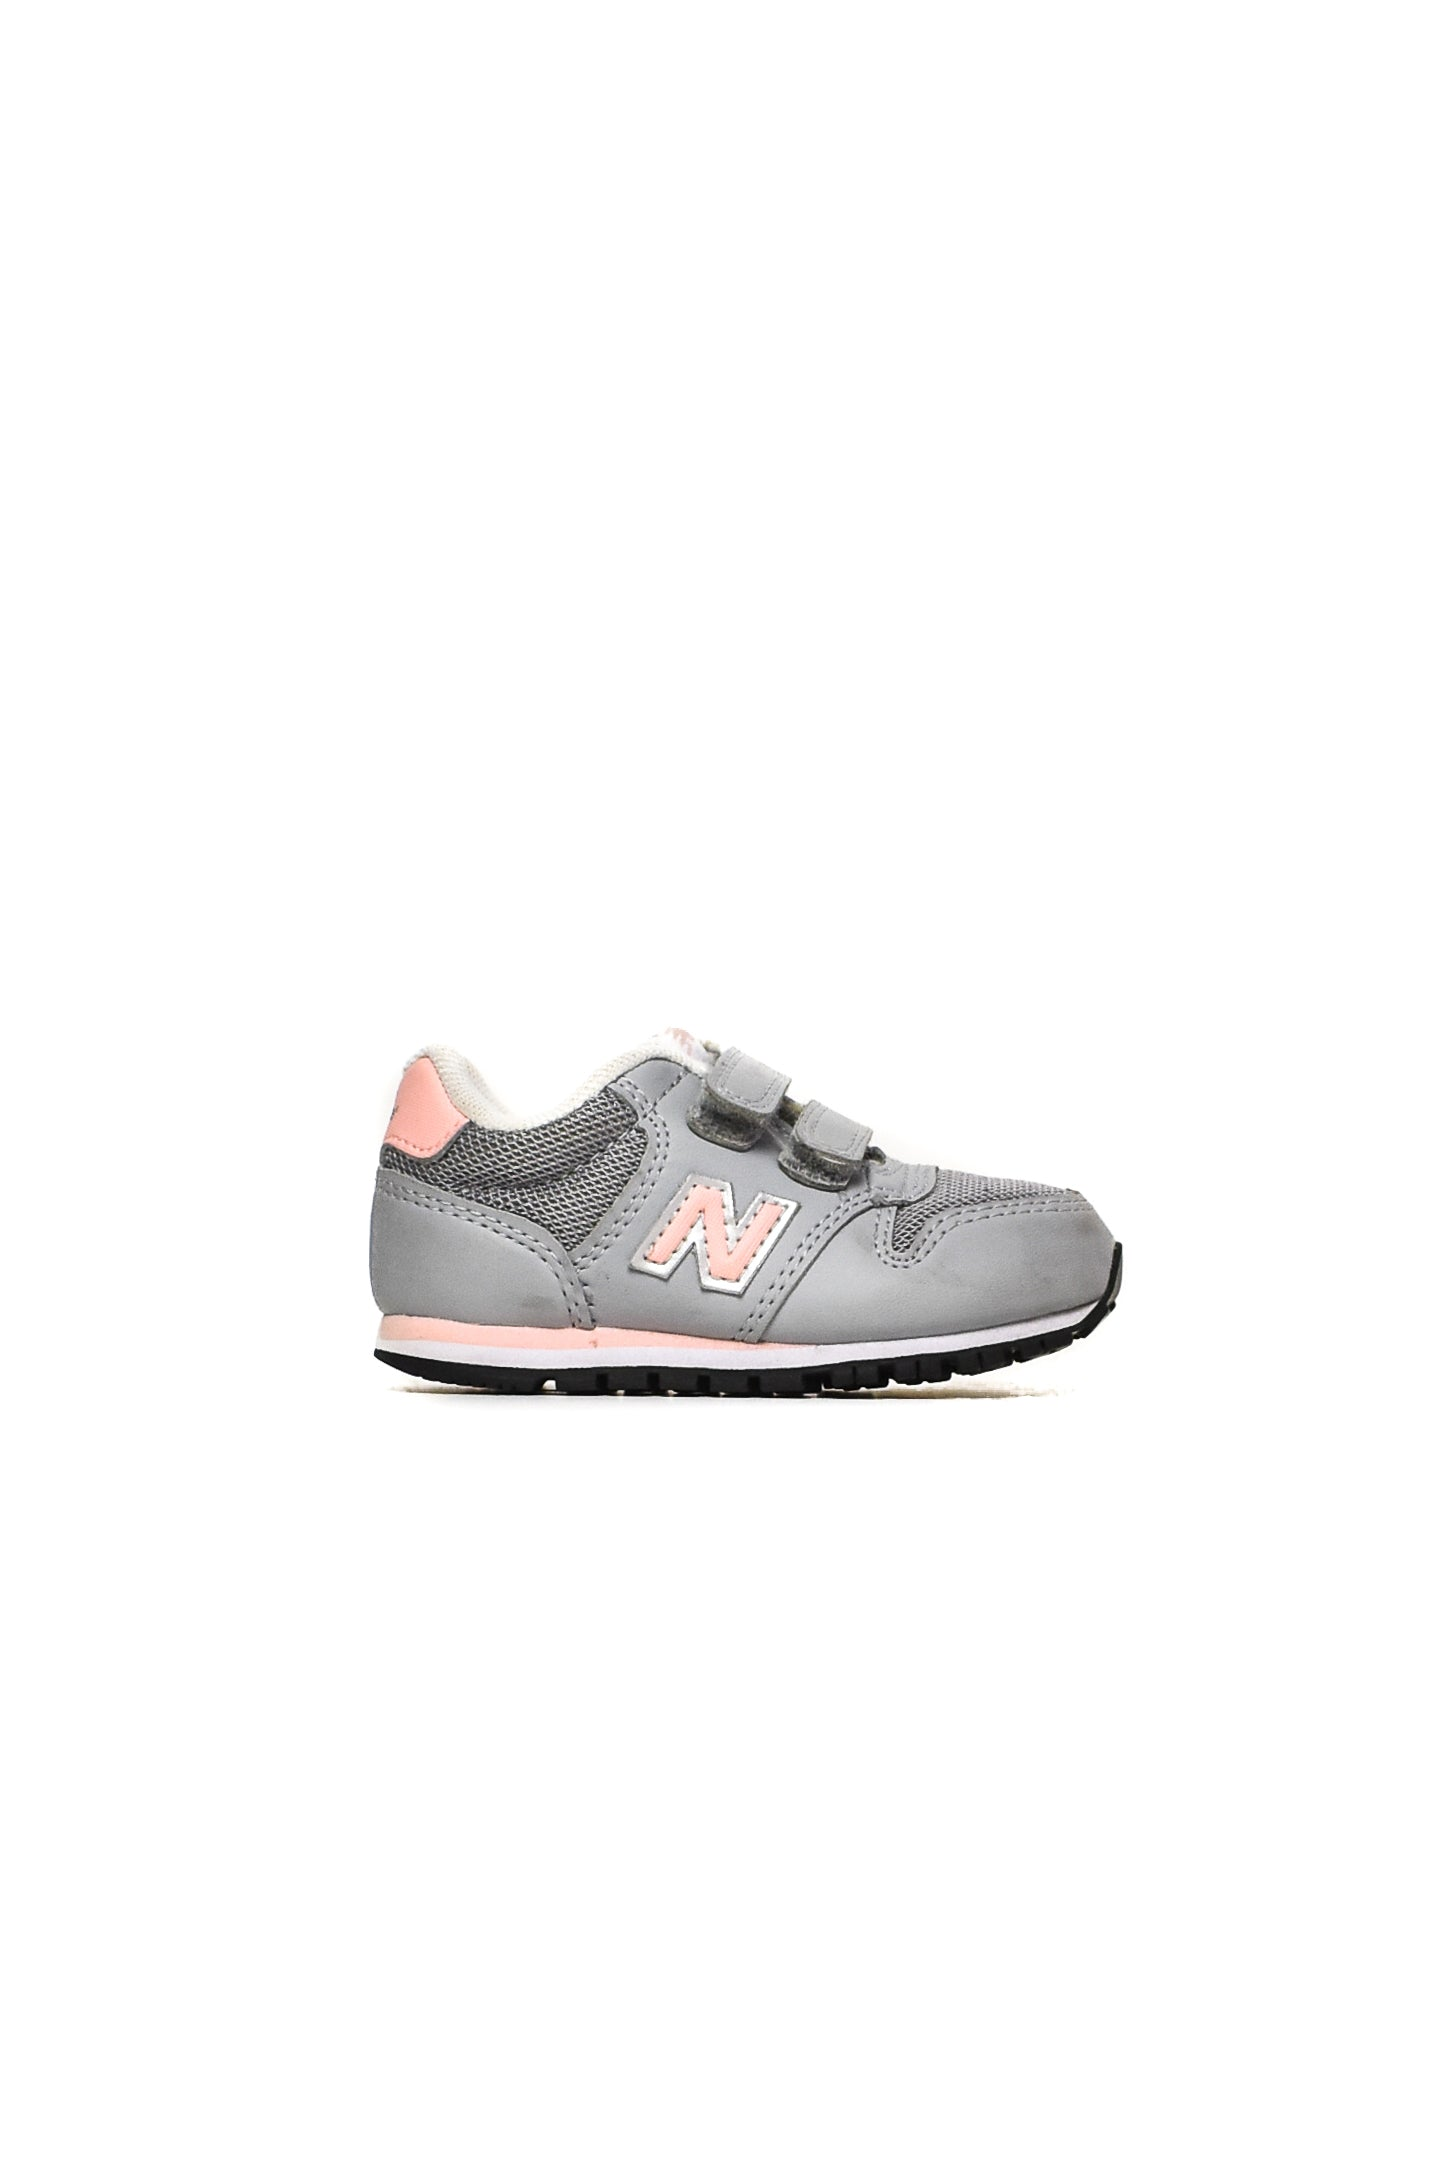 10007990 New Balance Baby~ Shoes 18-24M (EU 22.5) at Retykle